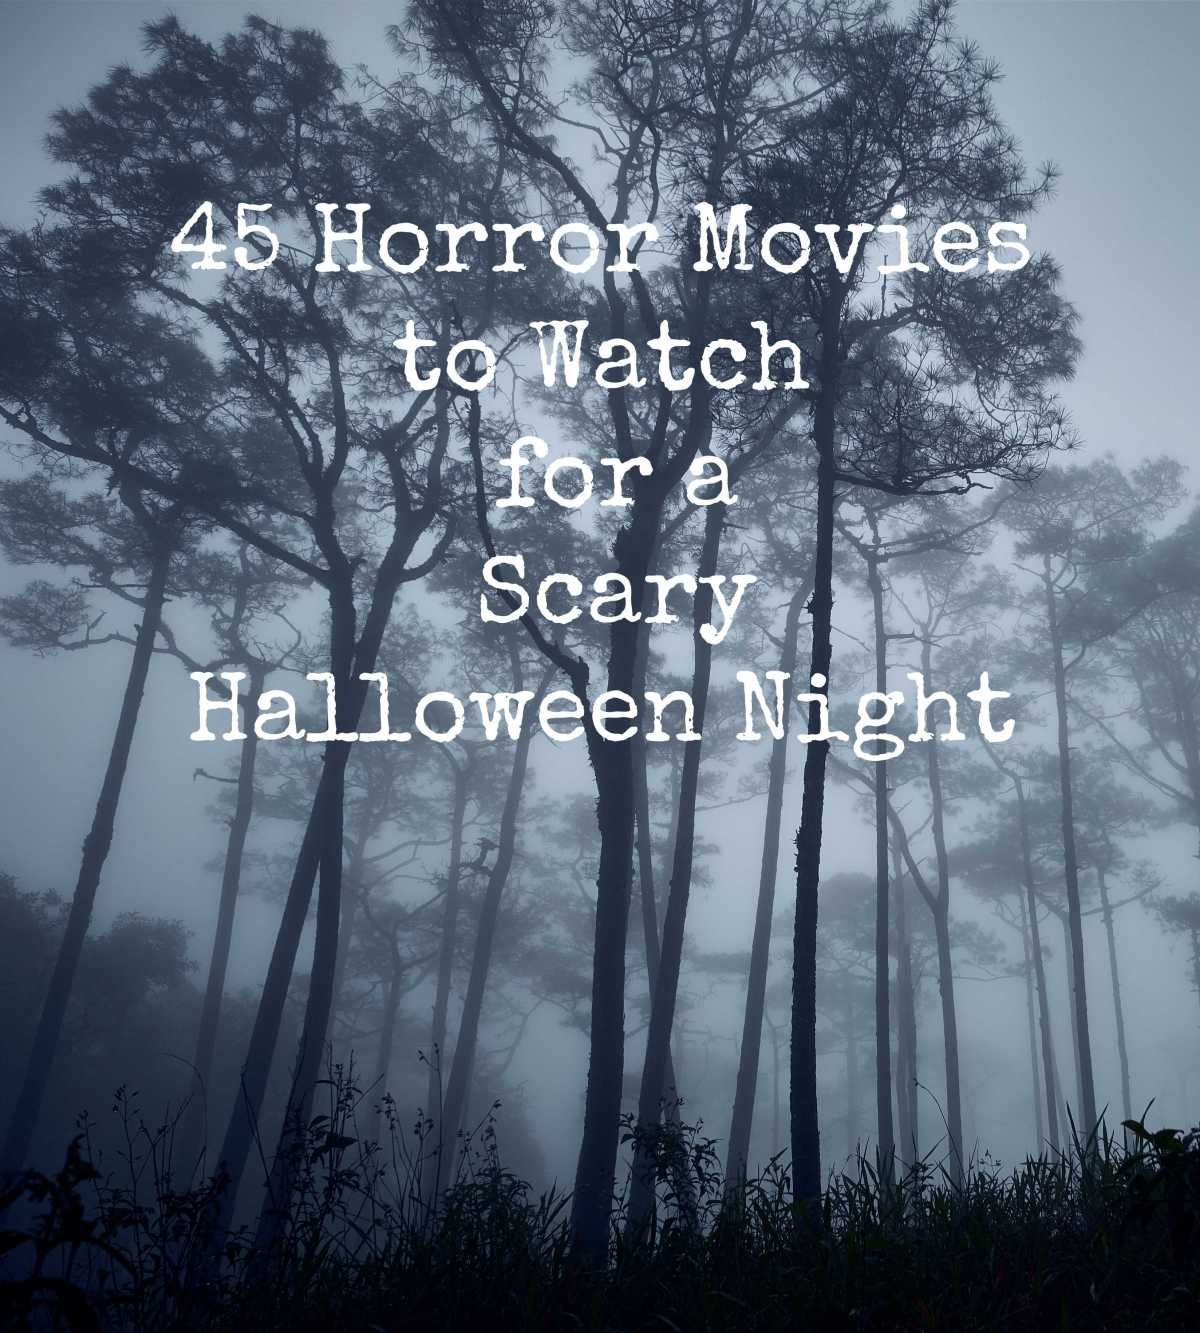 45 Horror Movies to Watch for a Scary HalloweenNight